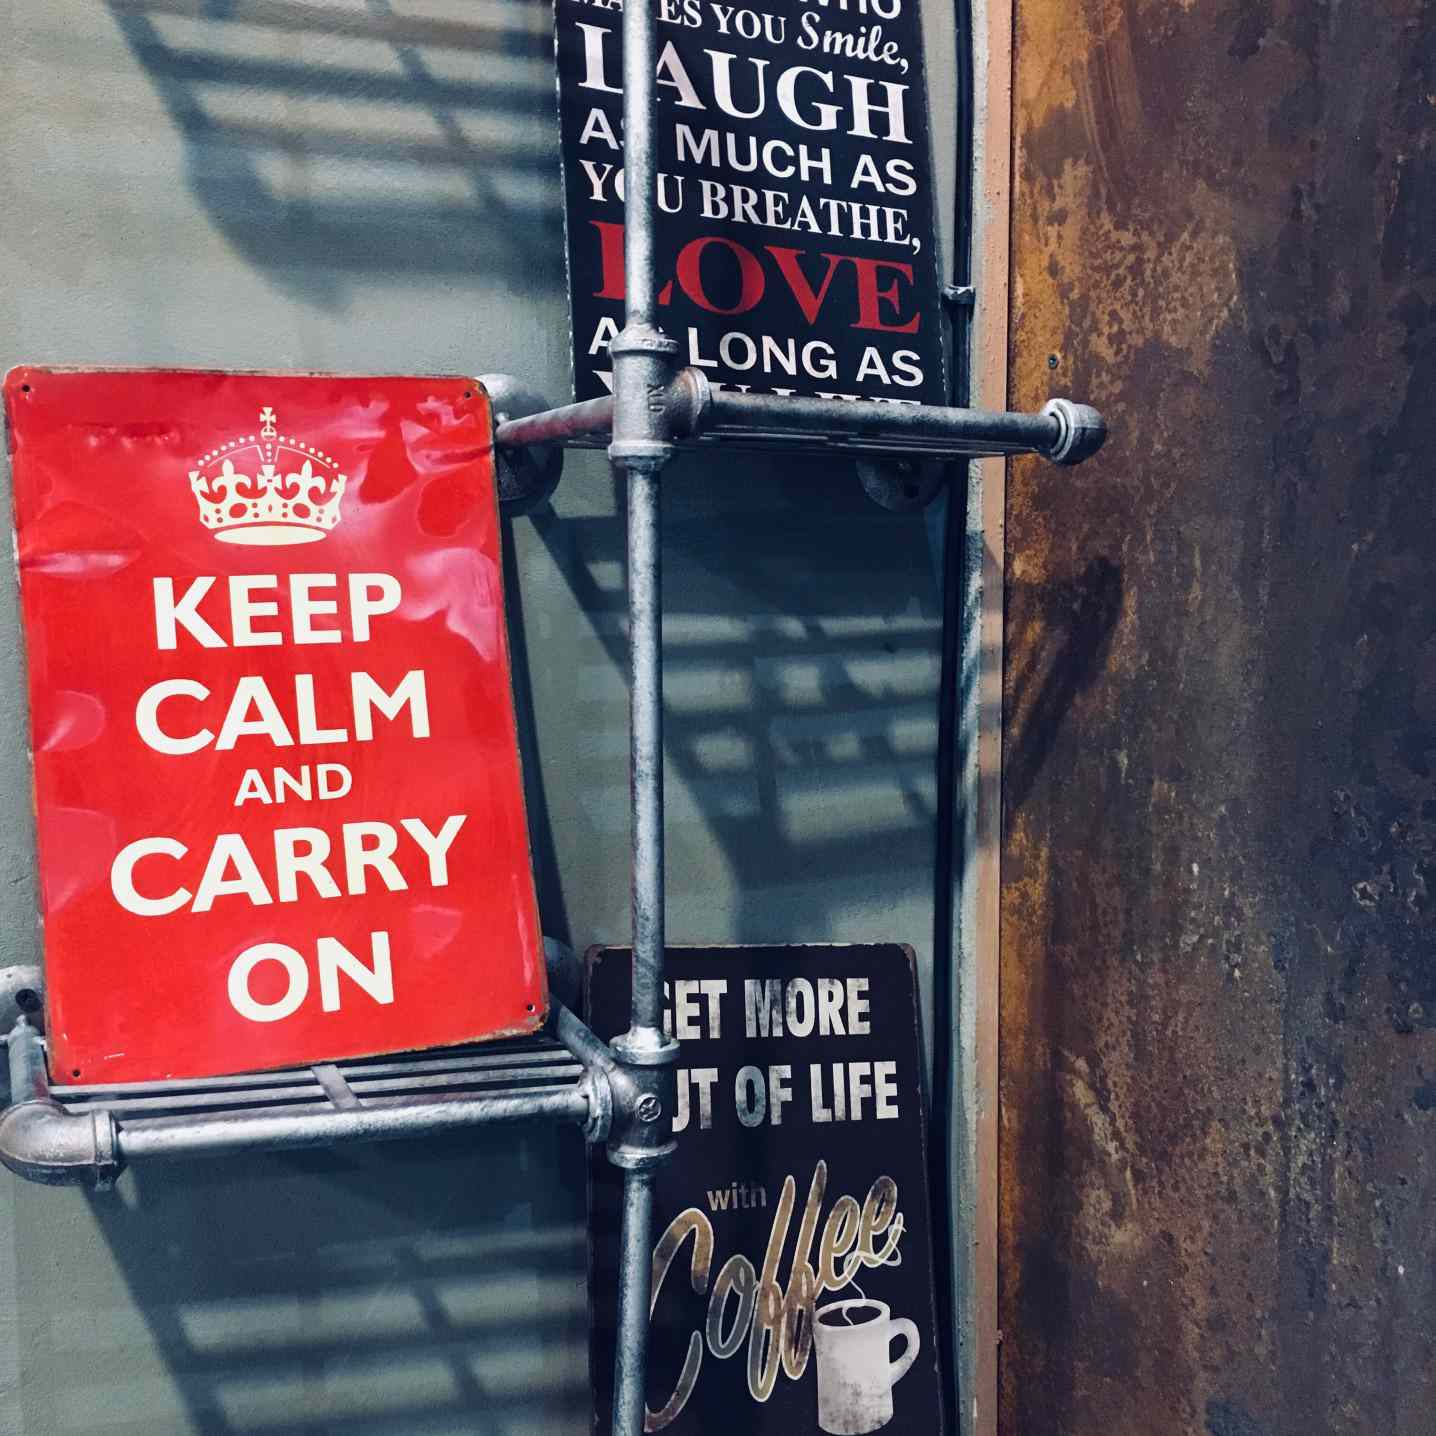 Red Keep Calm and Carry On sign on a shelf with other signage.